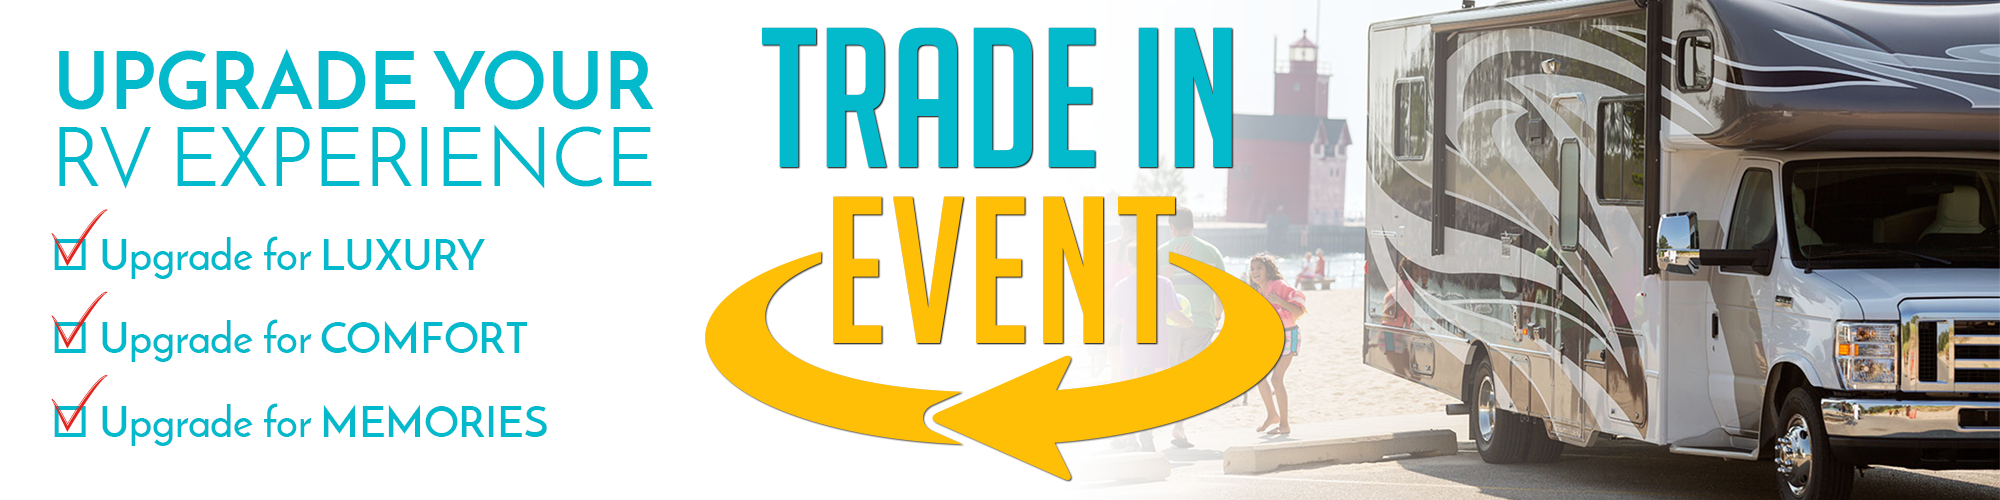 Trade in Event!